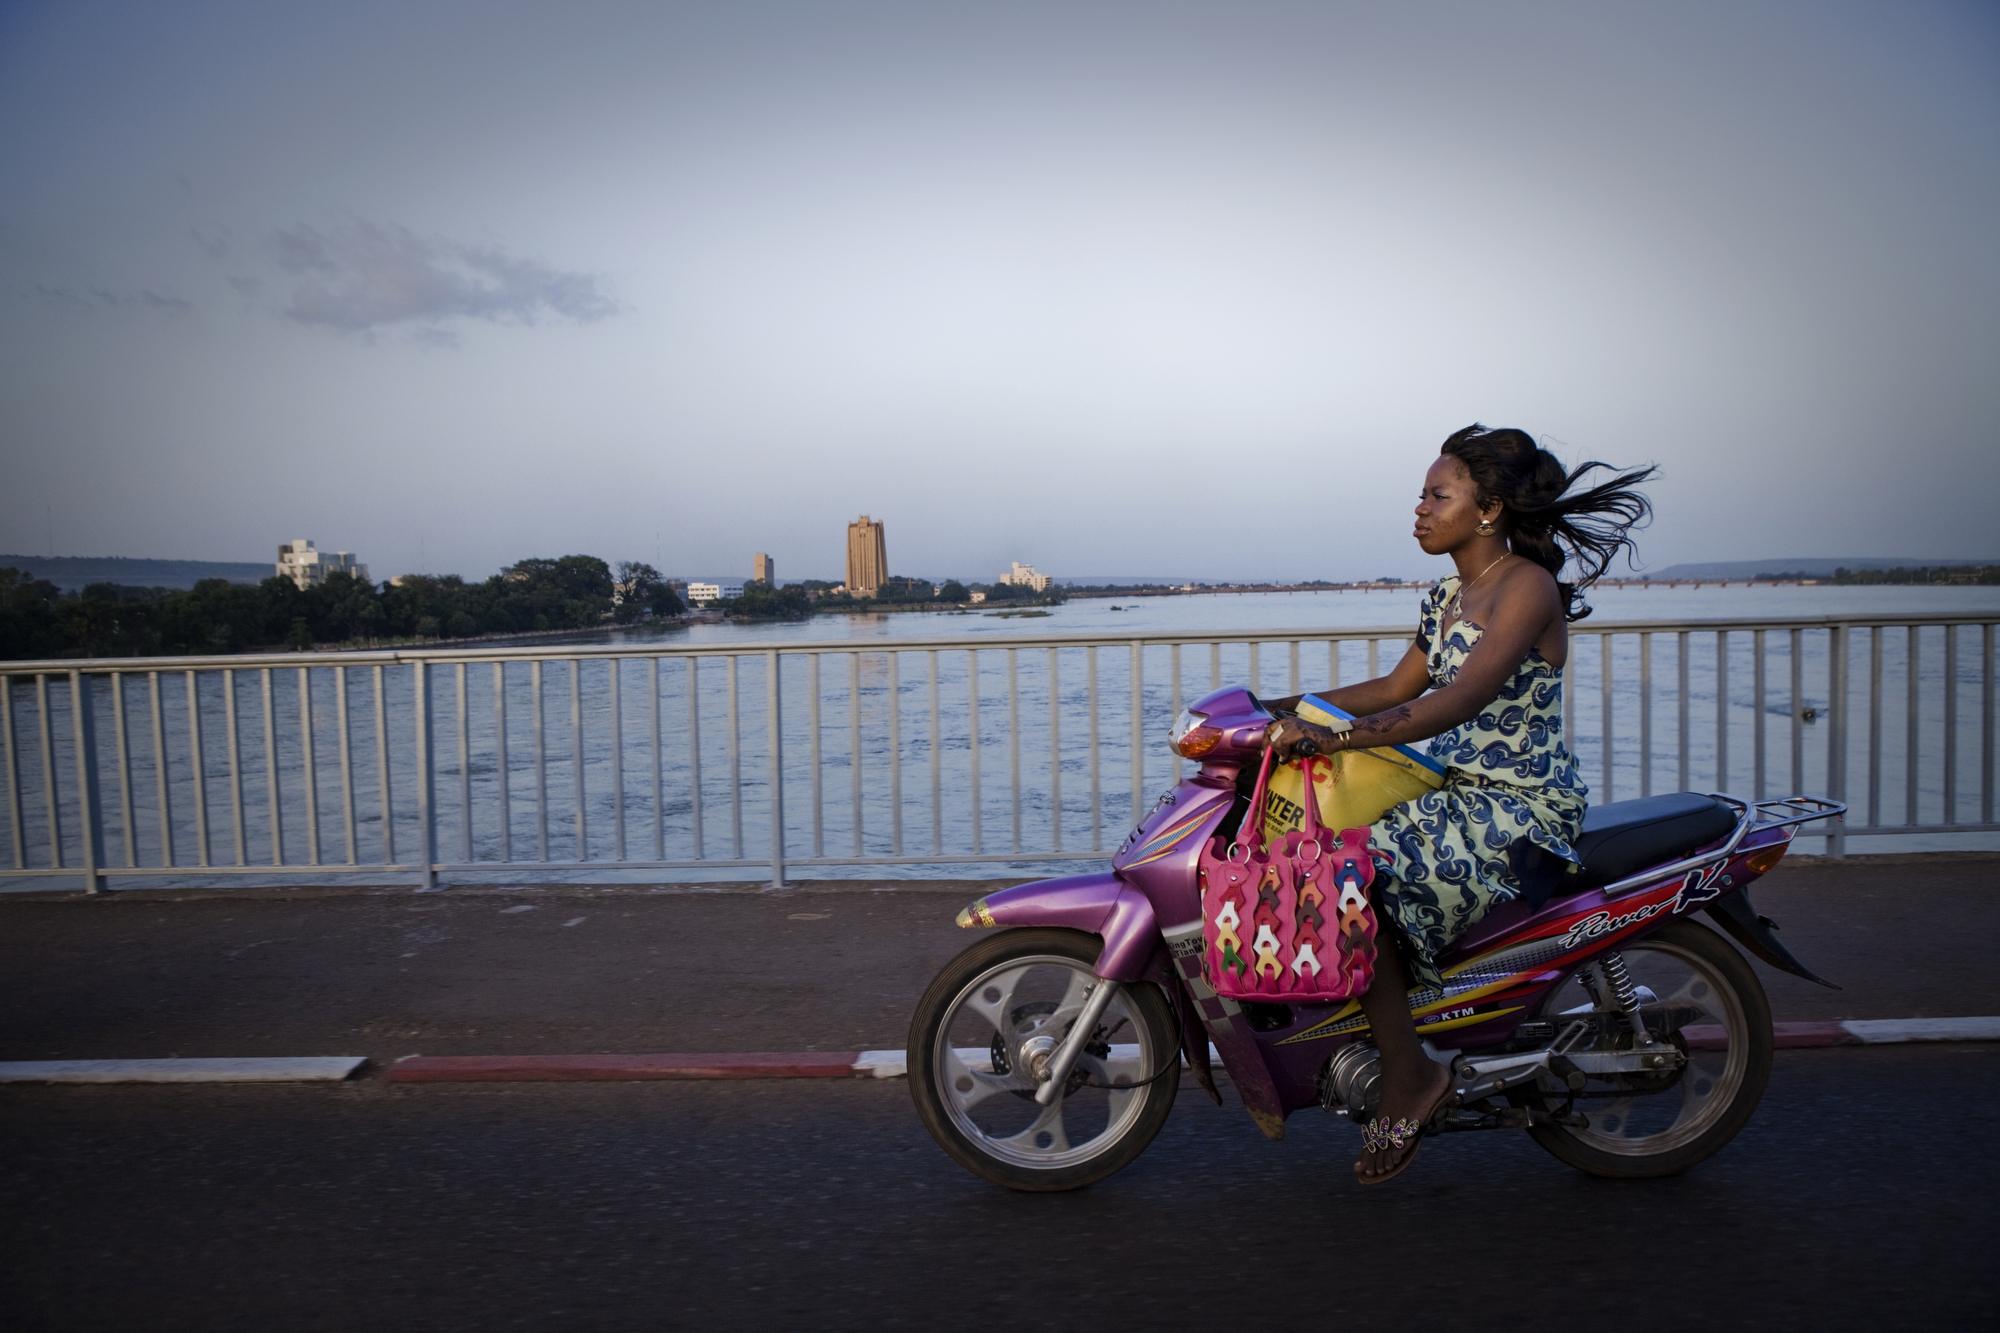 Bamako, Mali. SEPTEMBER 2013. A woman rides her motorcycle across the Niger River in Bamako, Mali. 